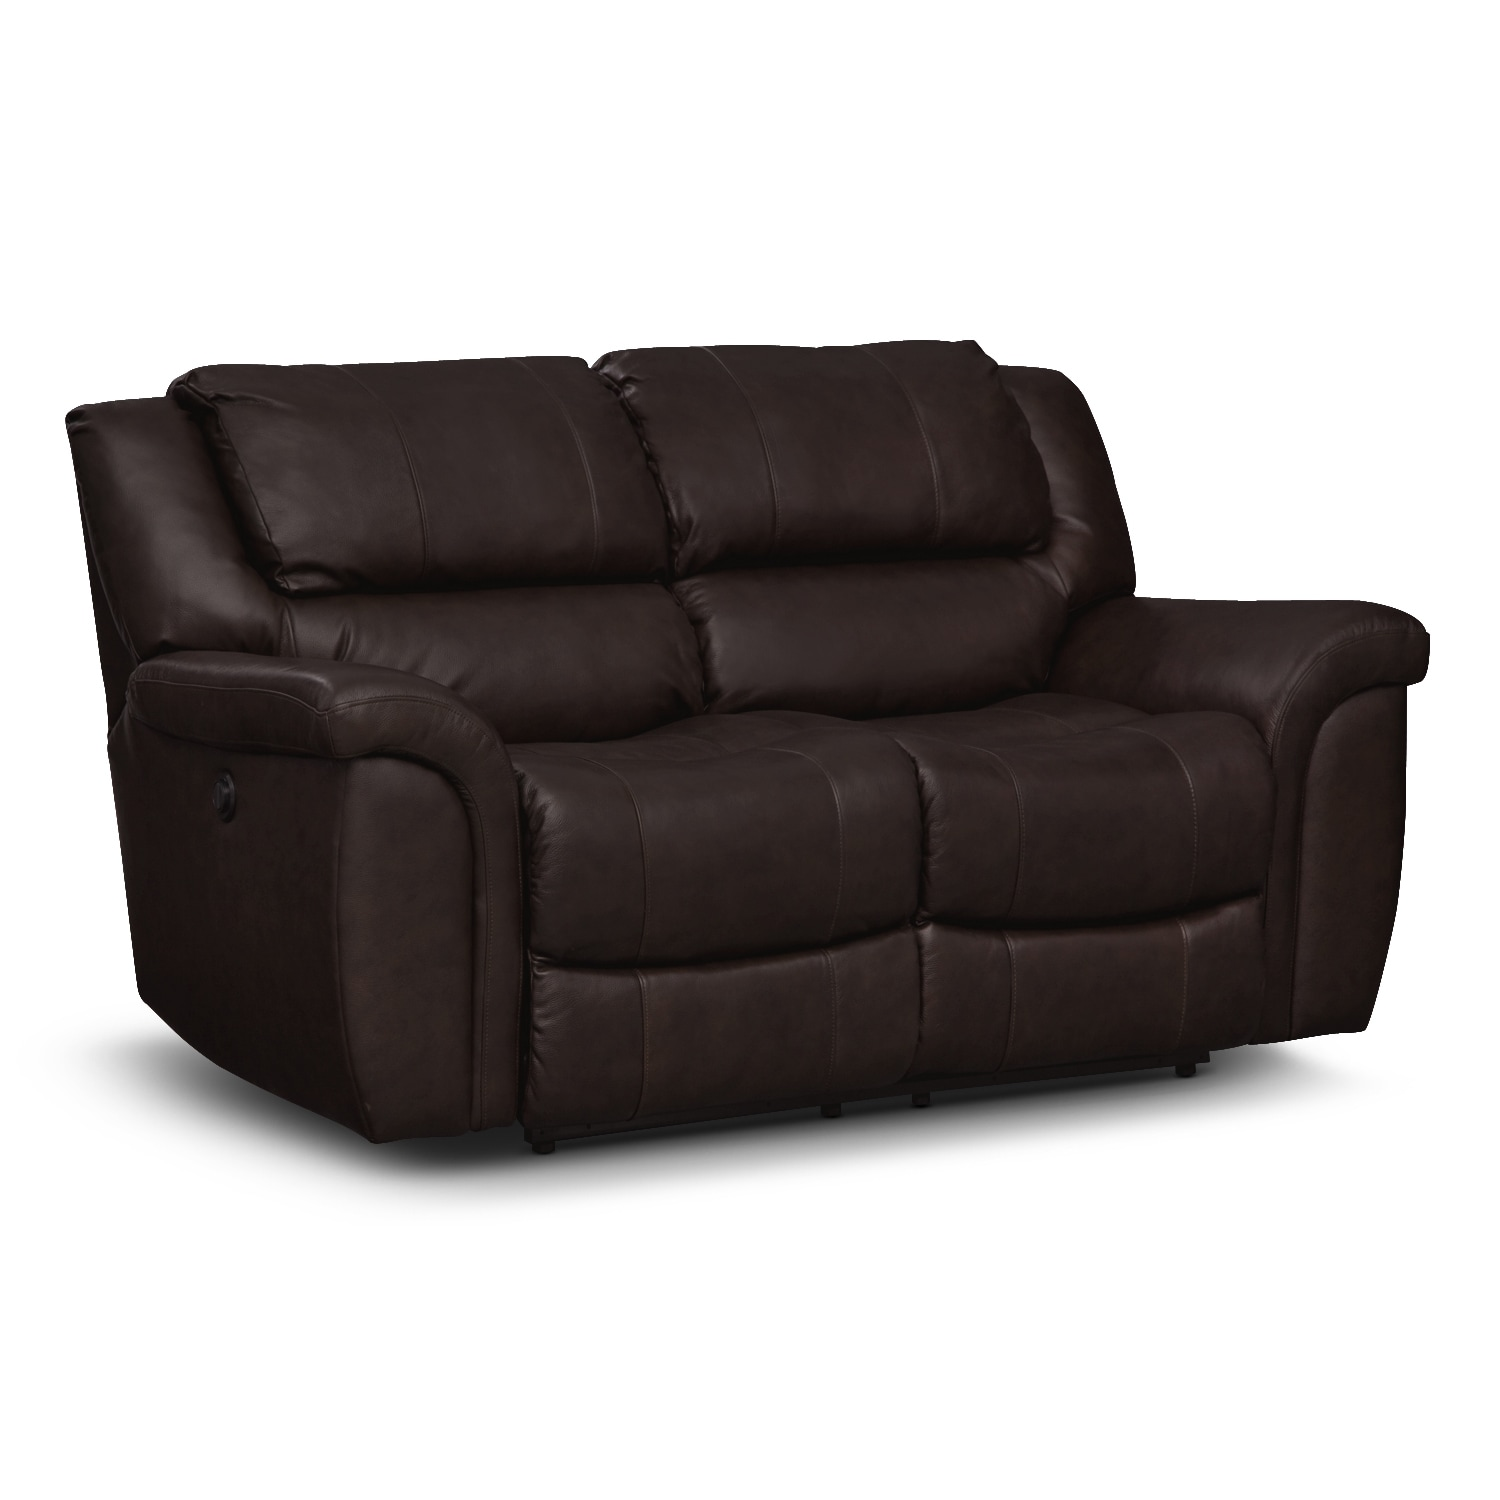 Aquarius II Dual Power Reclining Loveseat